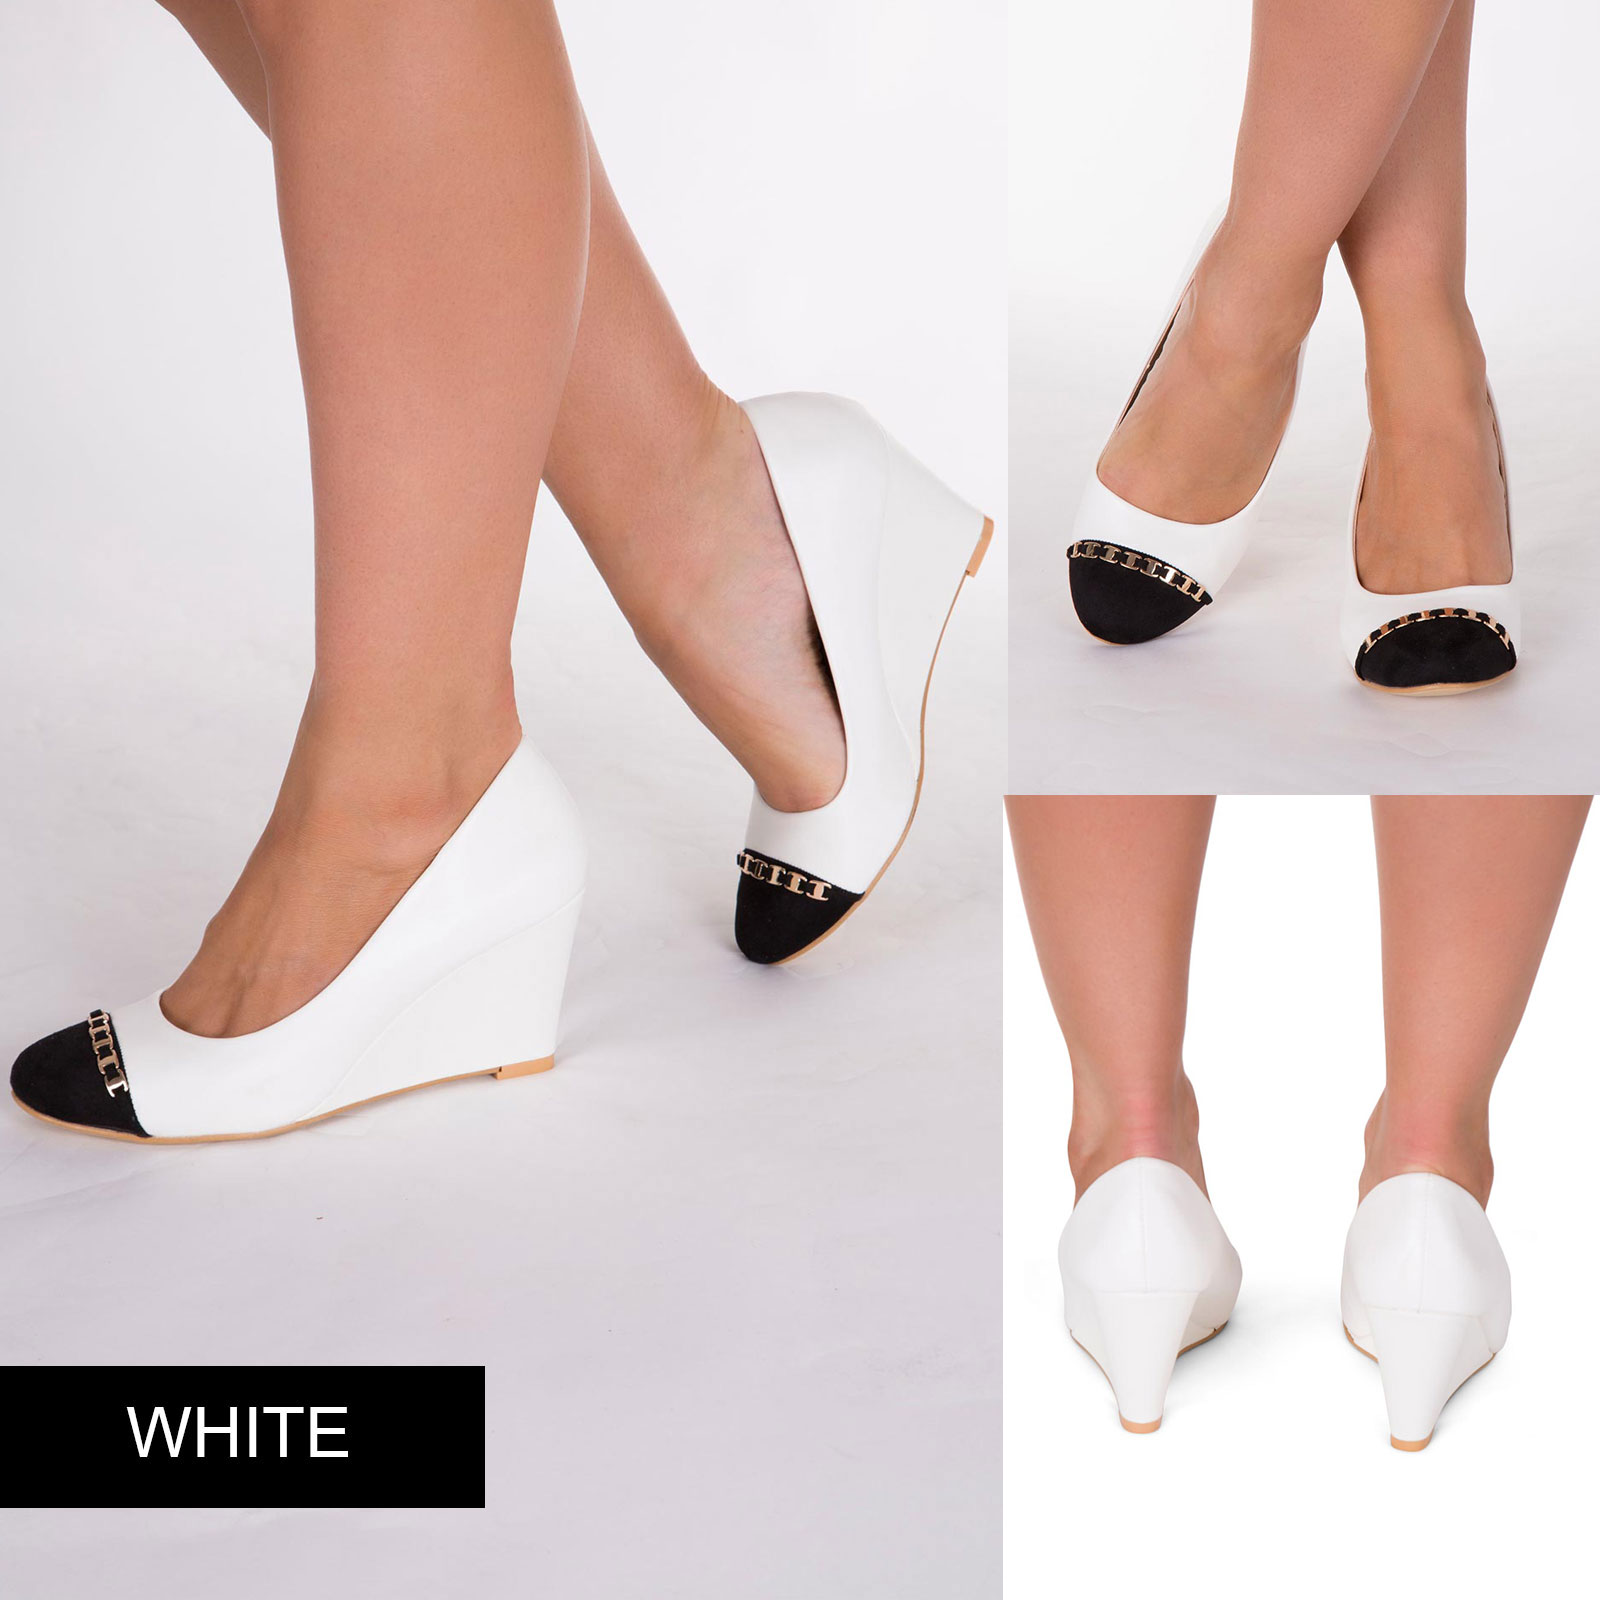 WOMENS-LOW-MID-HIGH-HEELS-LADIES-PLATFORMS-WEDGES-PUMPS-WORK-COURT-SHOES-UK-E3-8